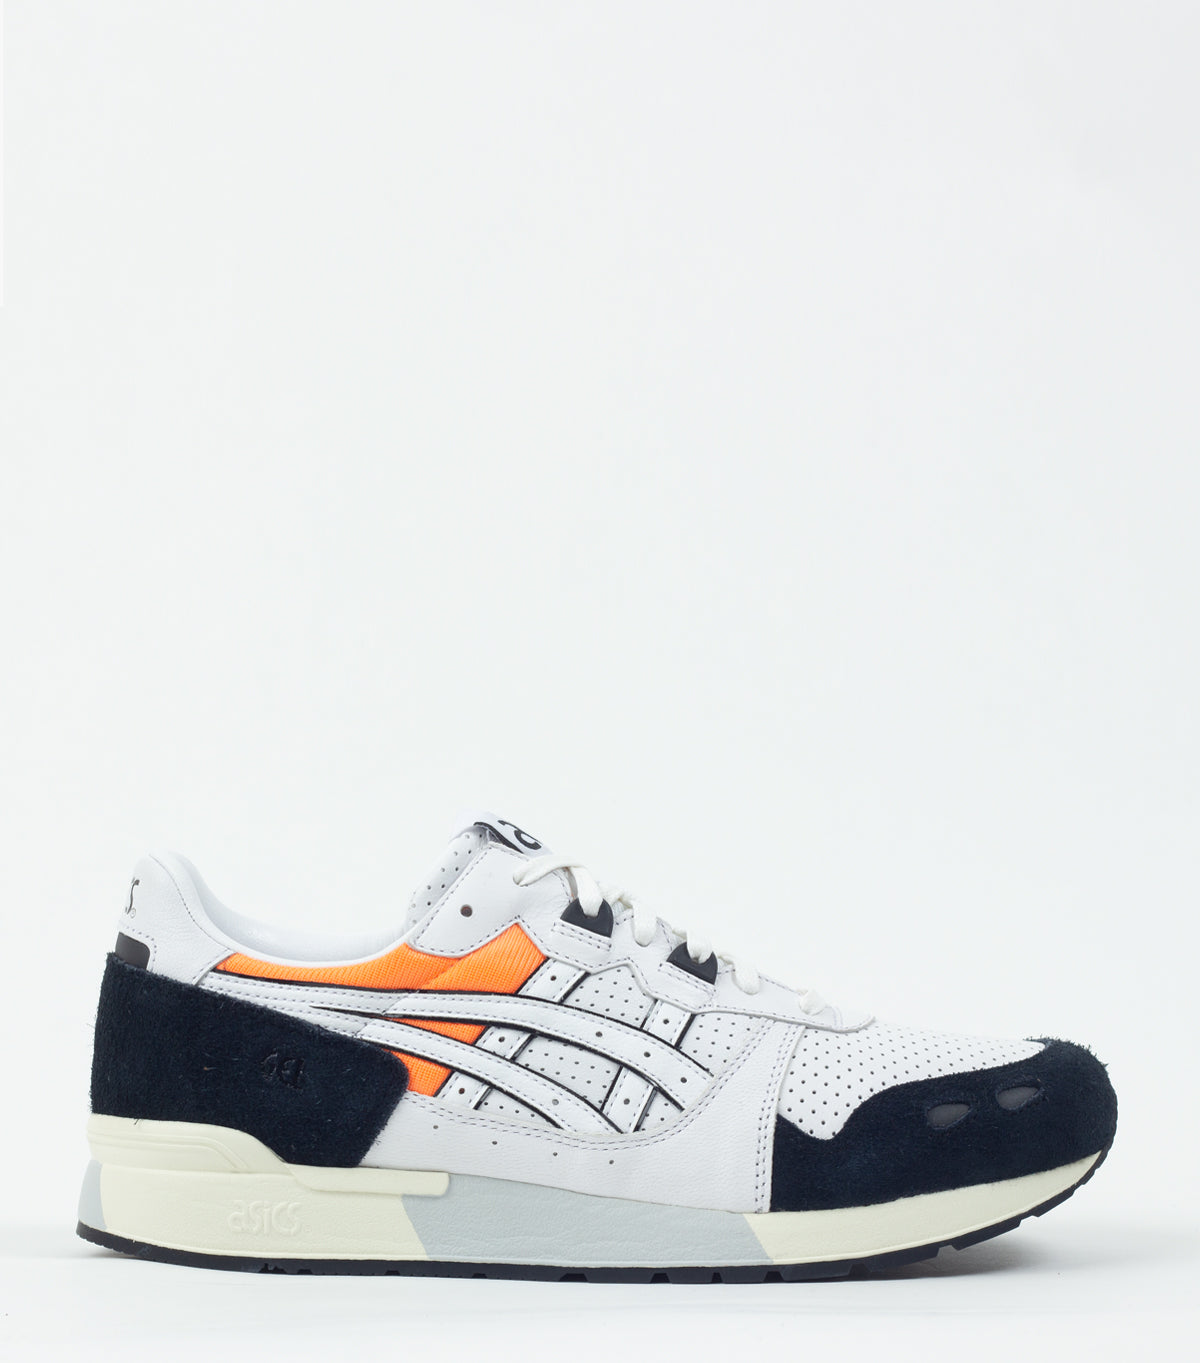 ASICS GEL-LYTE BLACK ORANGE